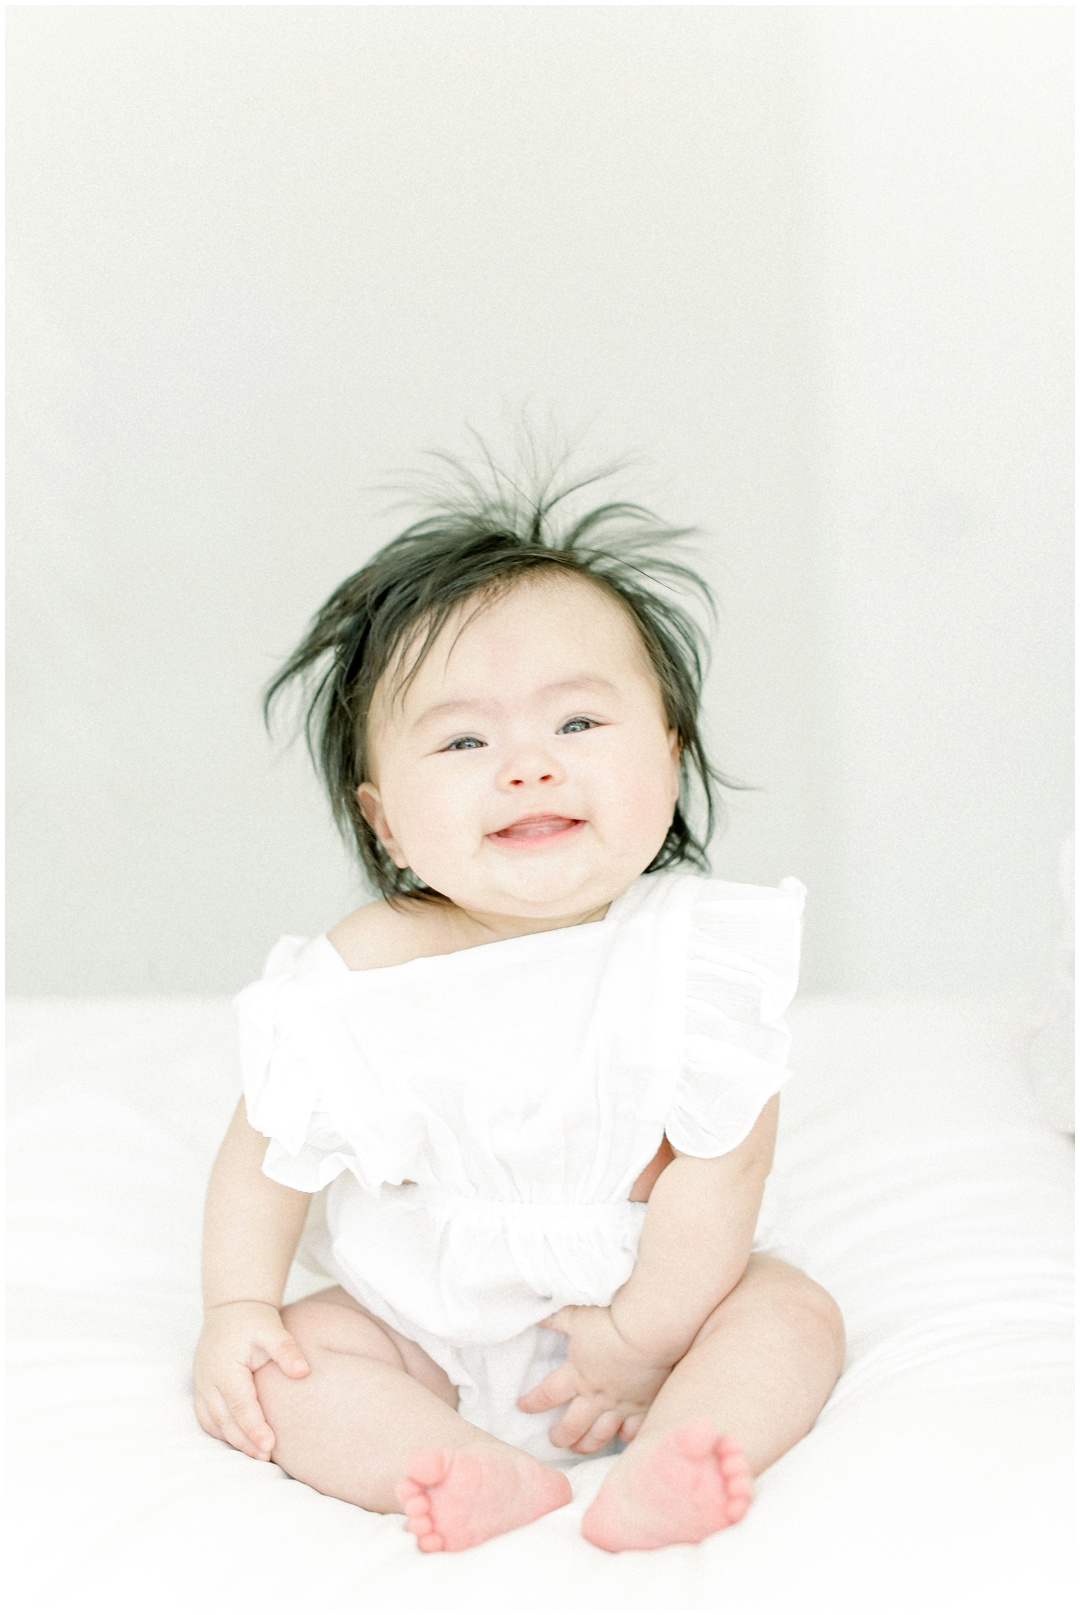 Newport_Beach_Family_Light_airy_Natural_Photographer_Newport_Beach_In-Home_Photographer_Orange_County_Family_Photographer_Cori_Kleckner_Photography_Huntington_Beach_Photographer_Family_OC_Newborn_Cassidee_Ma_Peter_Ma_Family__3139.jpg